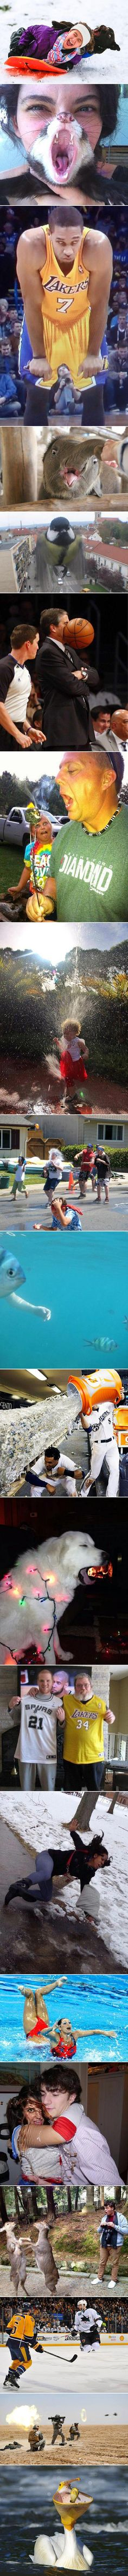 20 Images That Were Snapped at the Perfect Moment and Time - TechEBlog